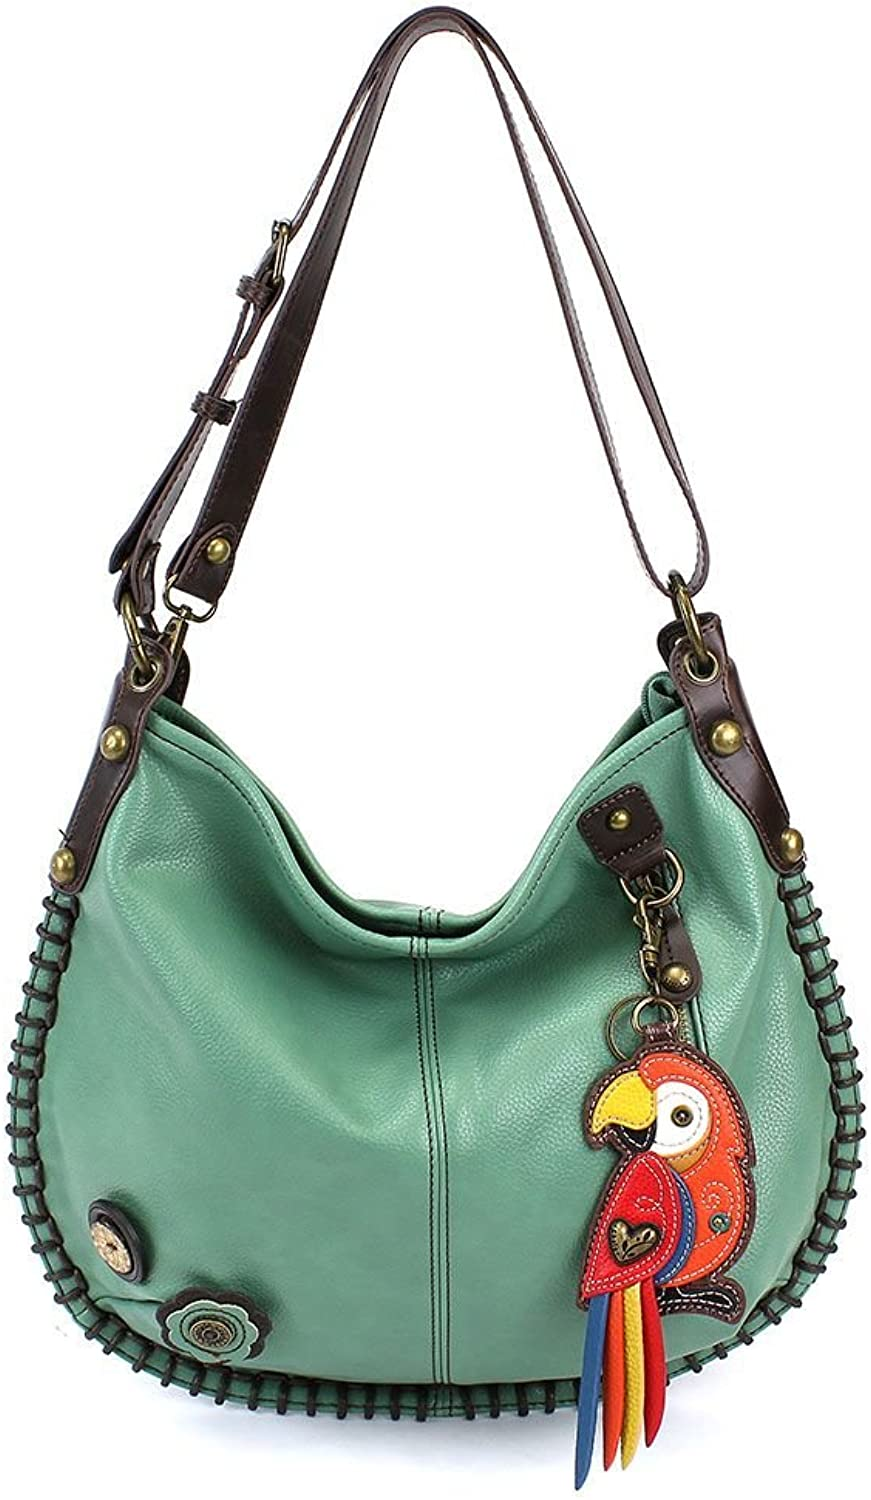 Chala Charming Hobo Crossbody Red Parred  Teal